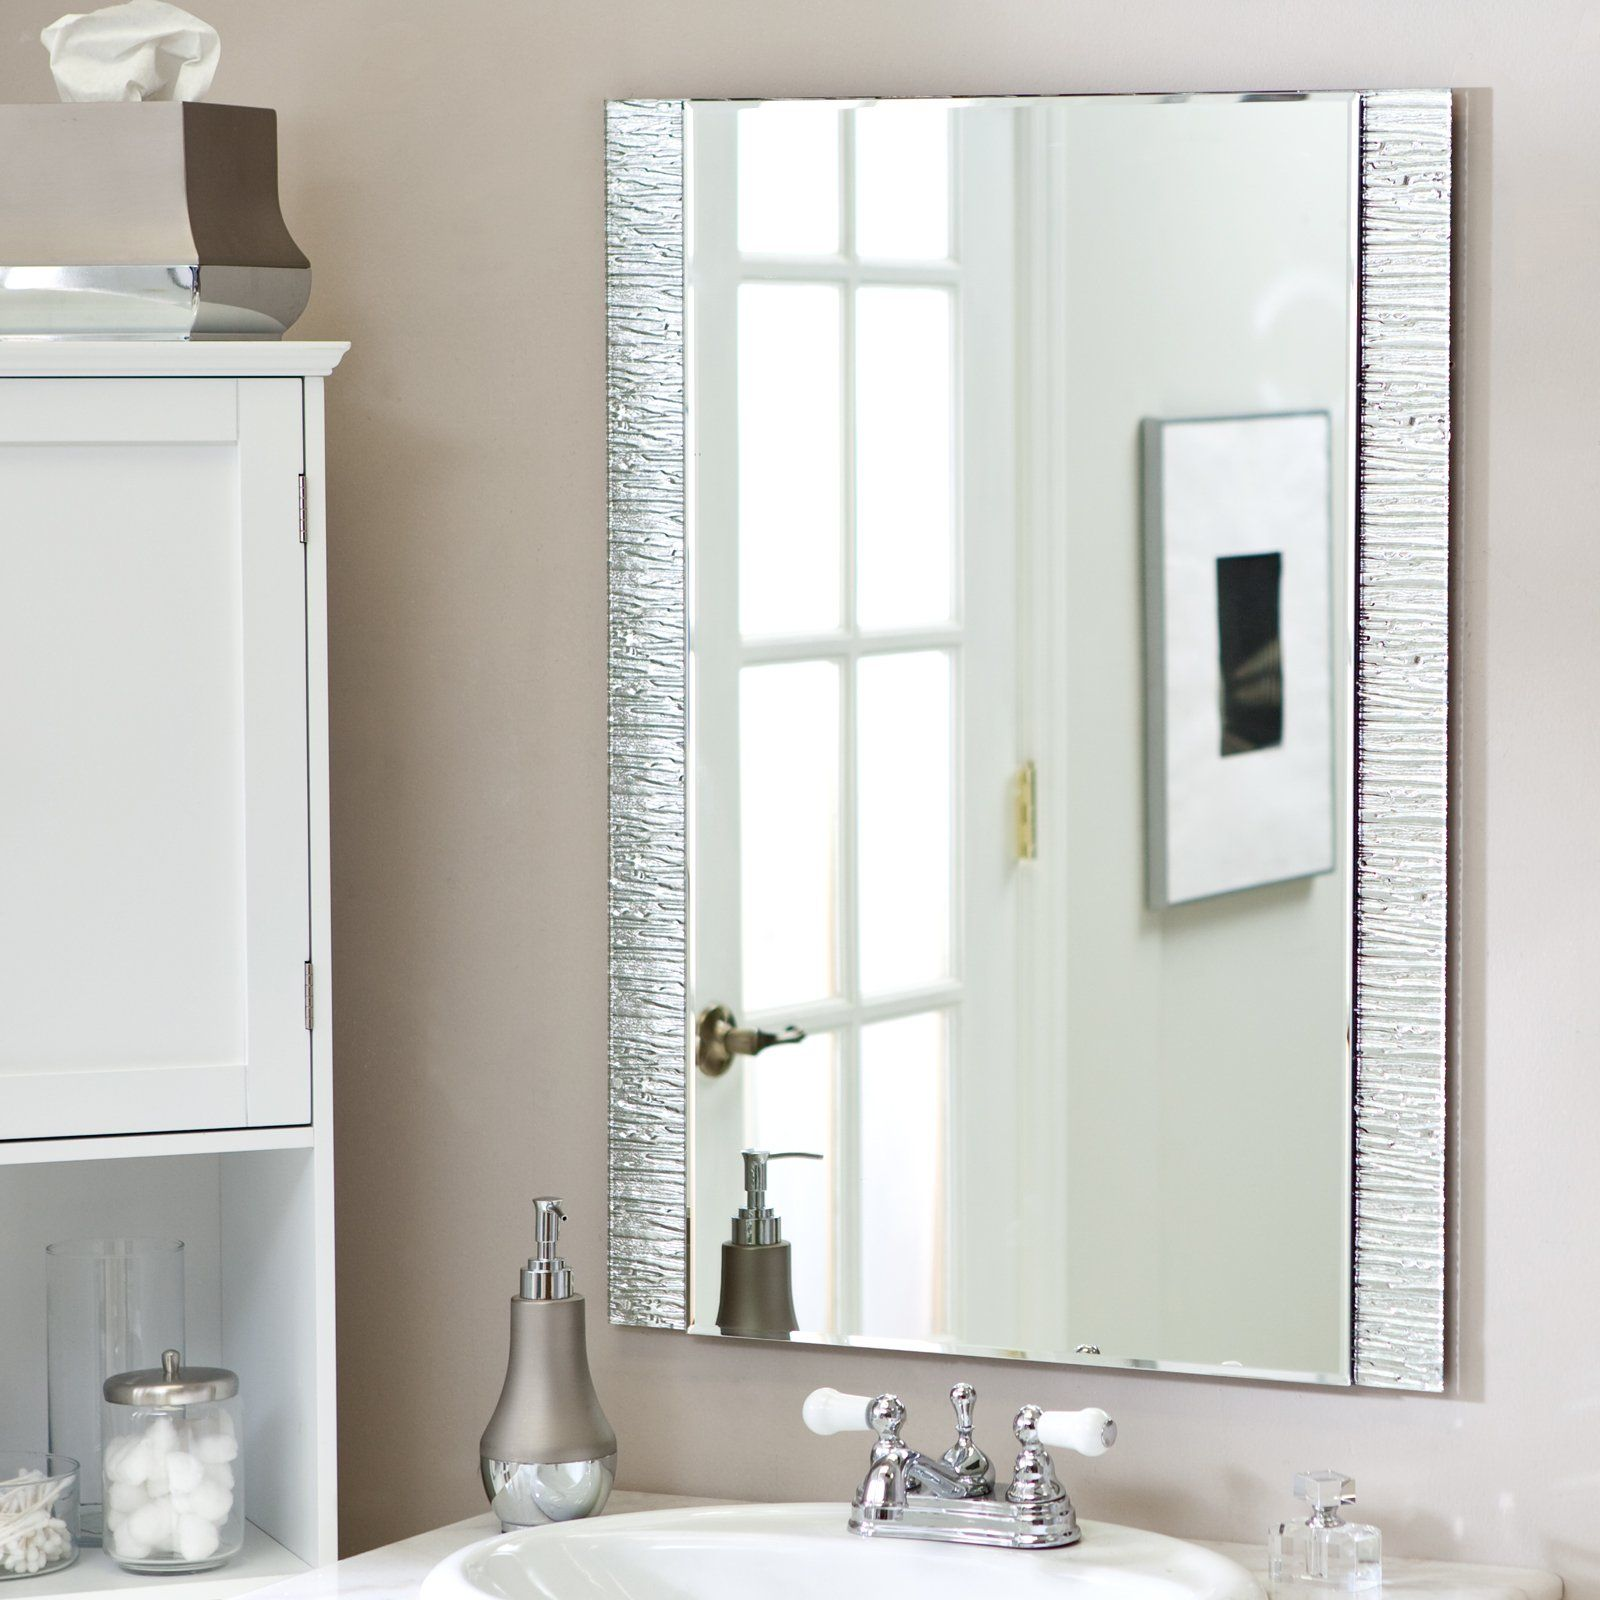 bathroom vanity mirrors  bedroom and living room image collections -  best images about mirrors on pinterest vanity mirrors light  bestimages about mirrors on